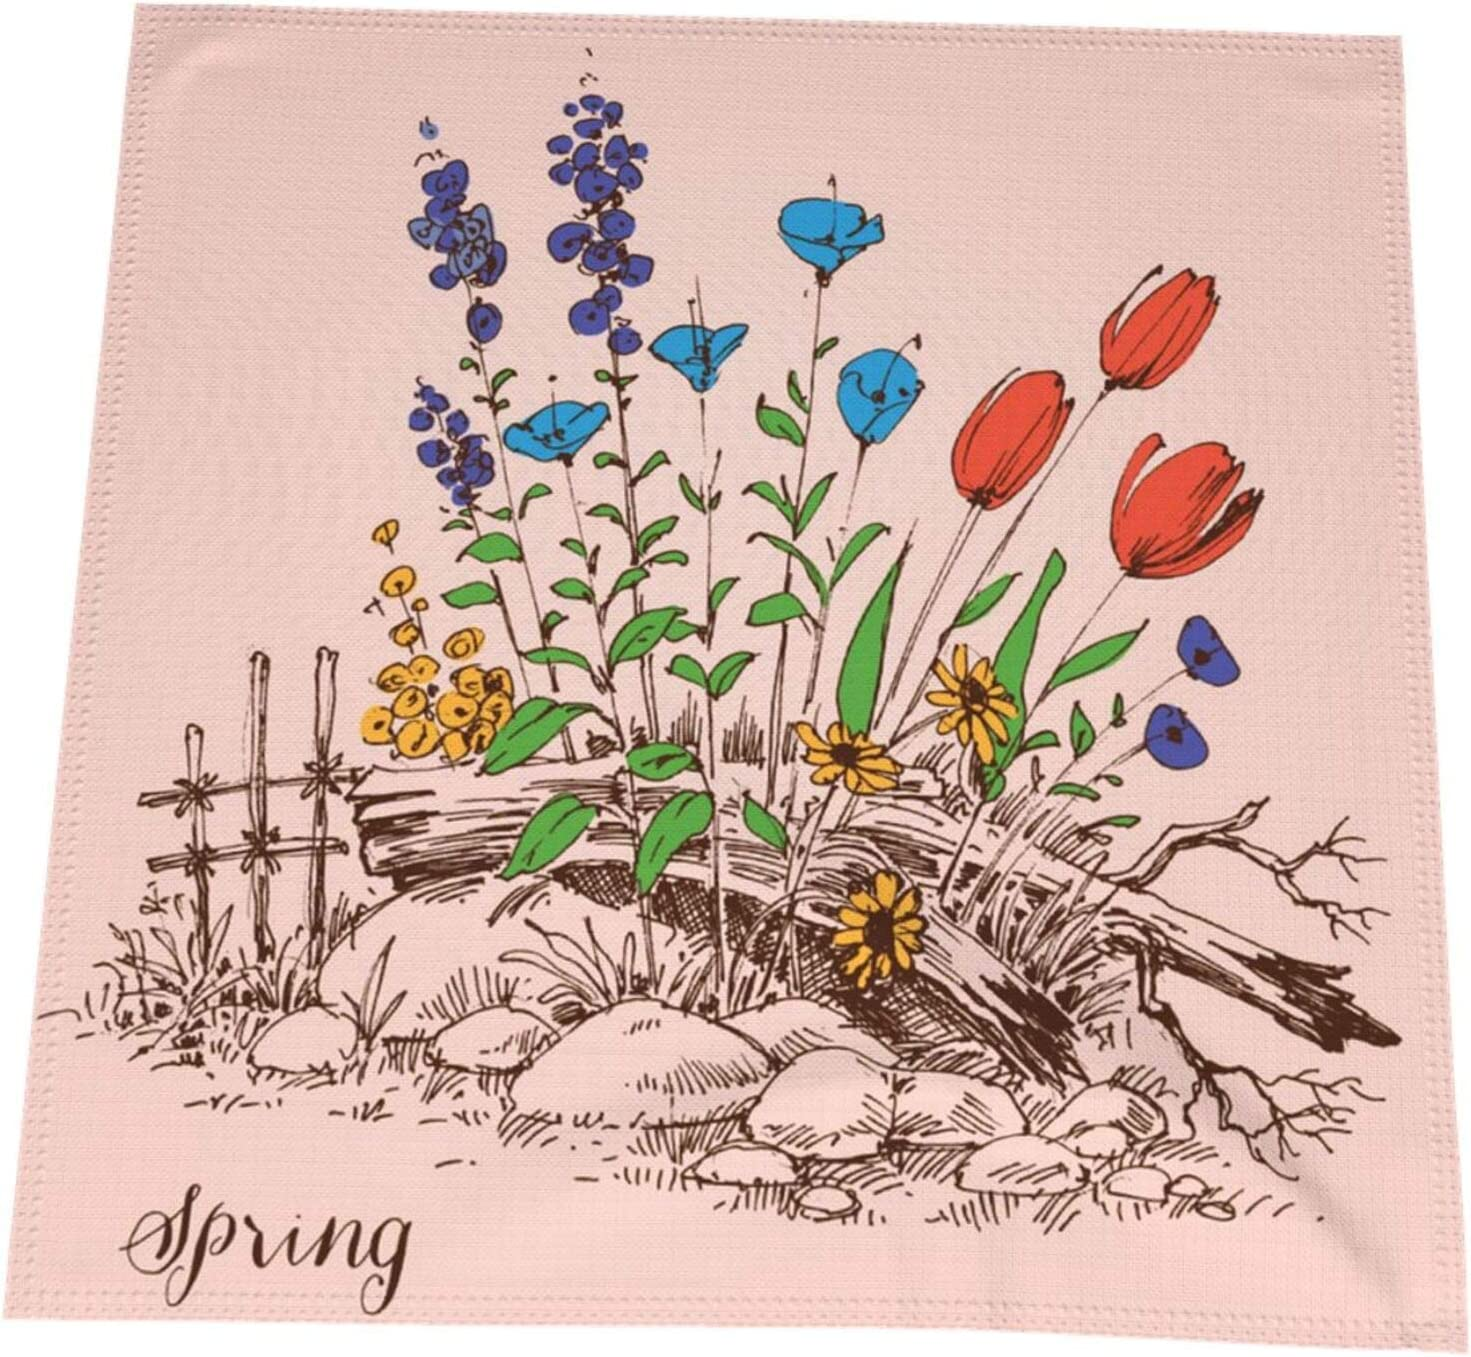 FRSH MNT mart Garden OFFicial Spring Everyday Use Quality Napkin Premium Cloth